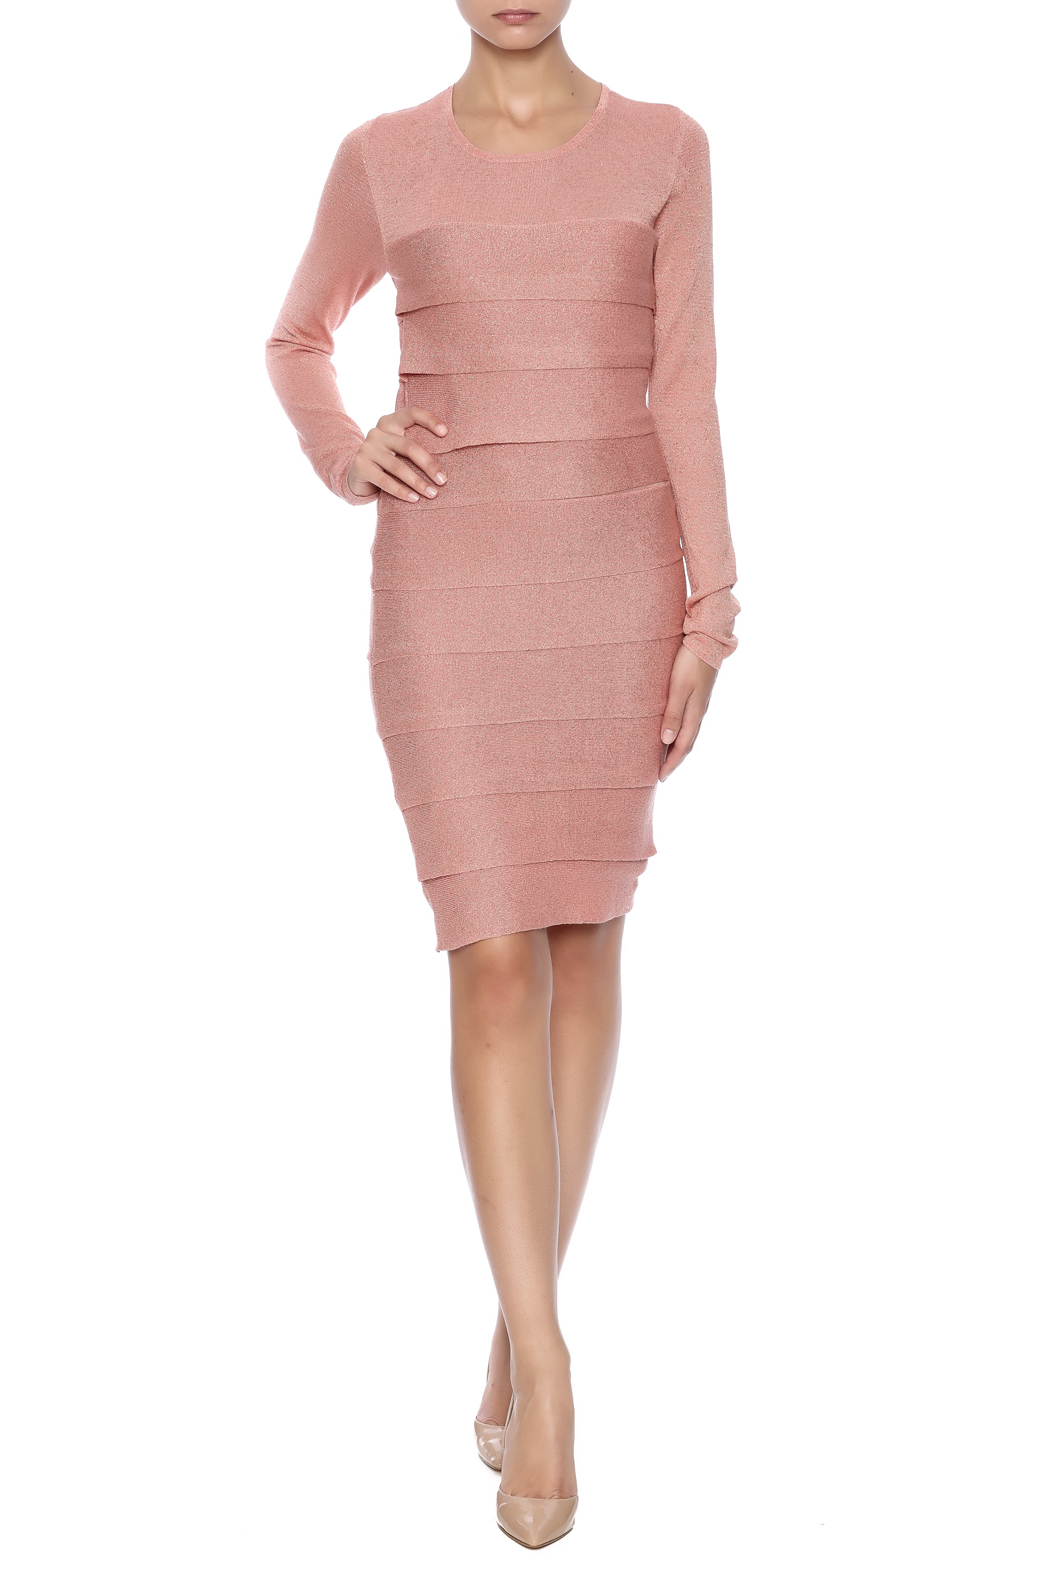 BCBG Max Azria Mariah Dress - Front Full Image